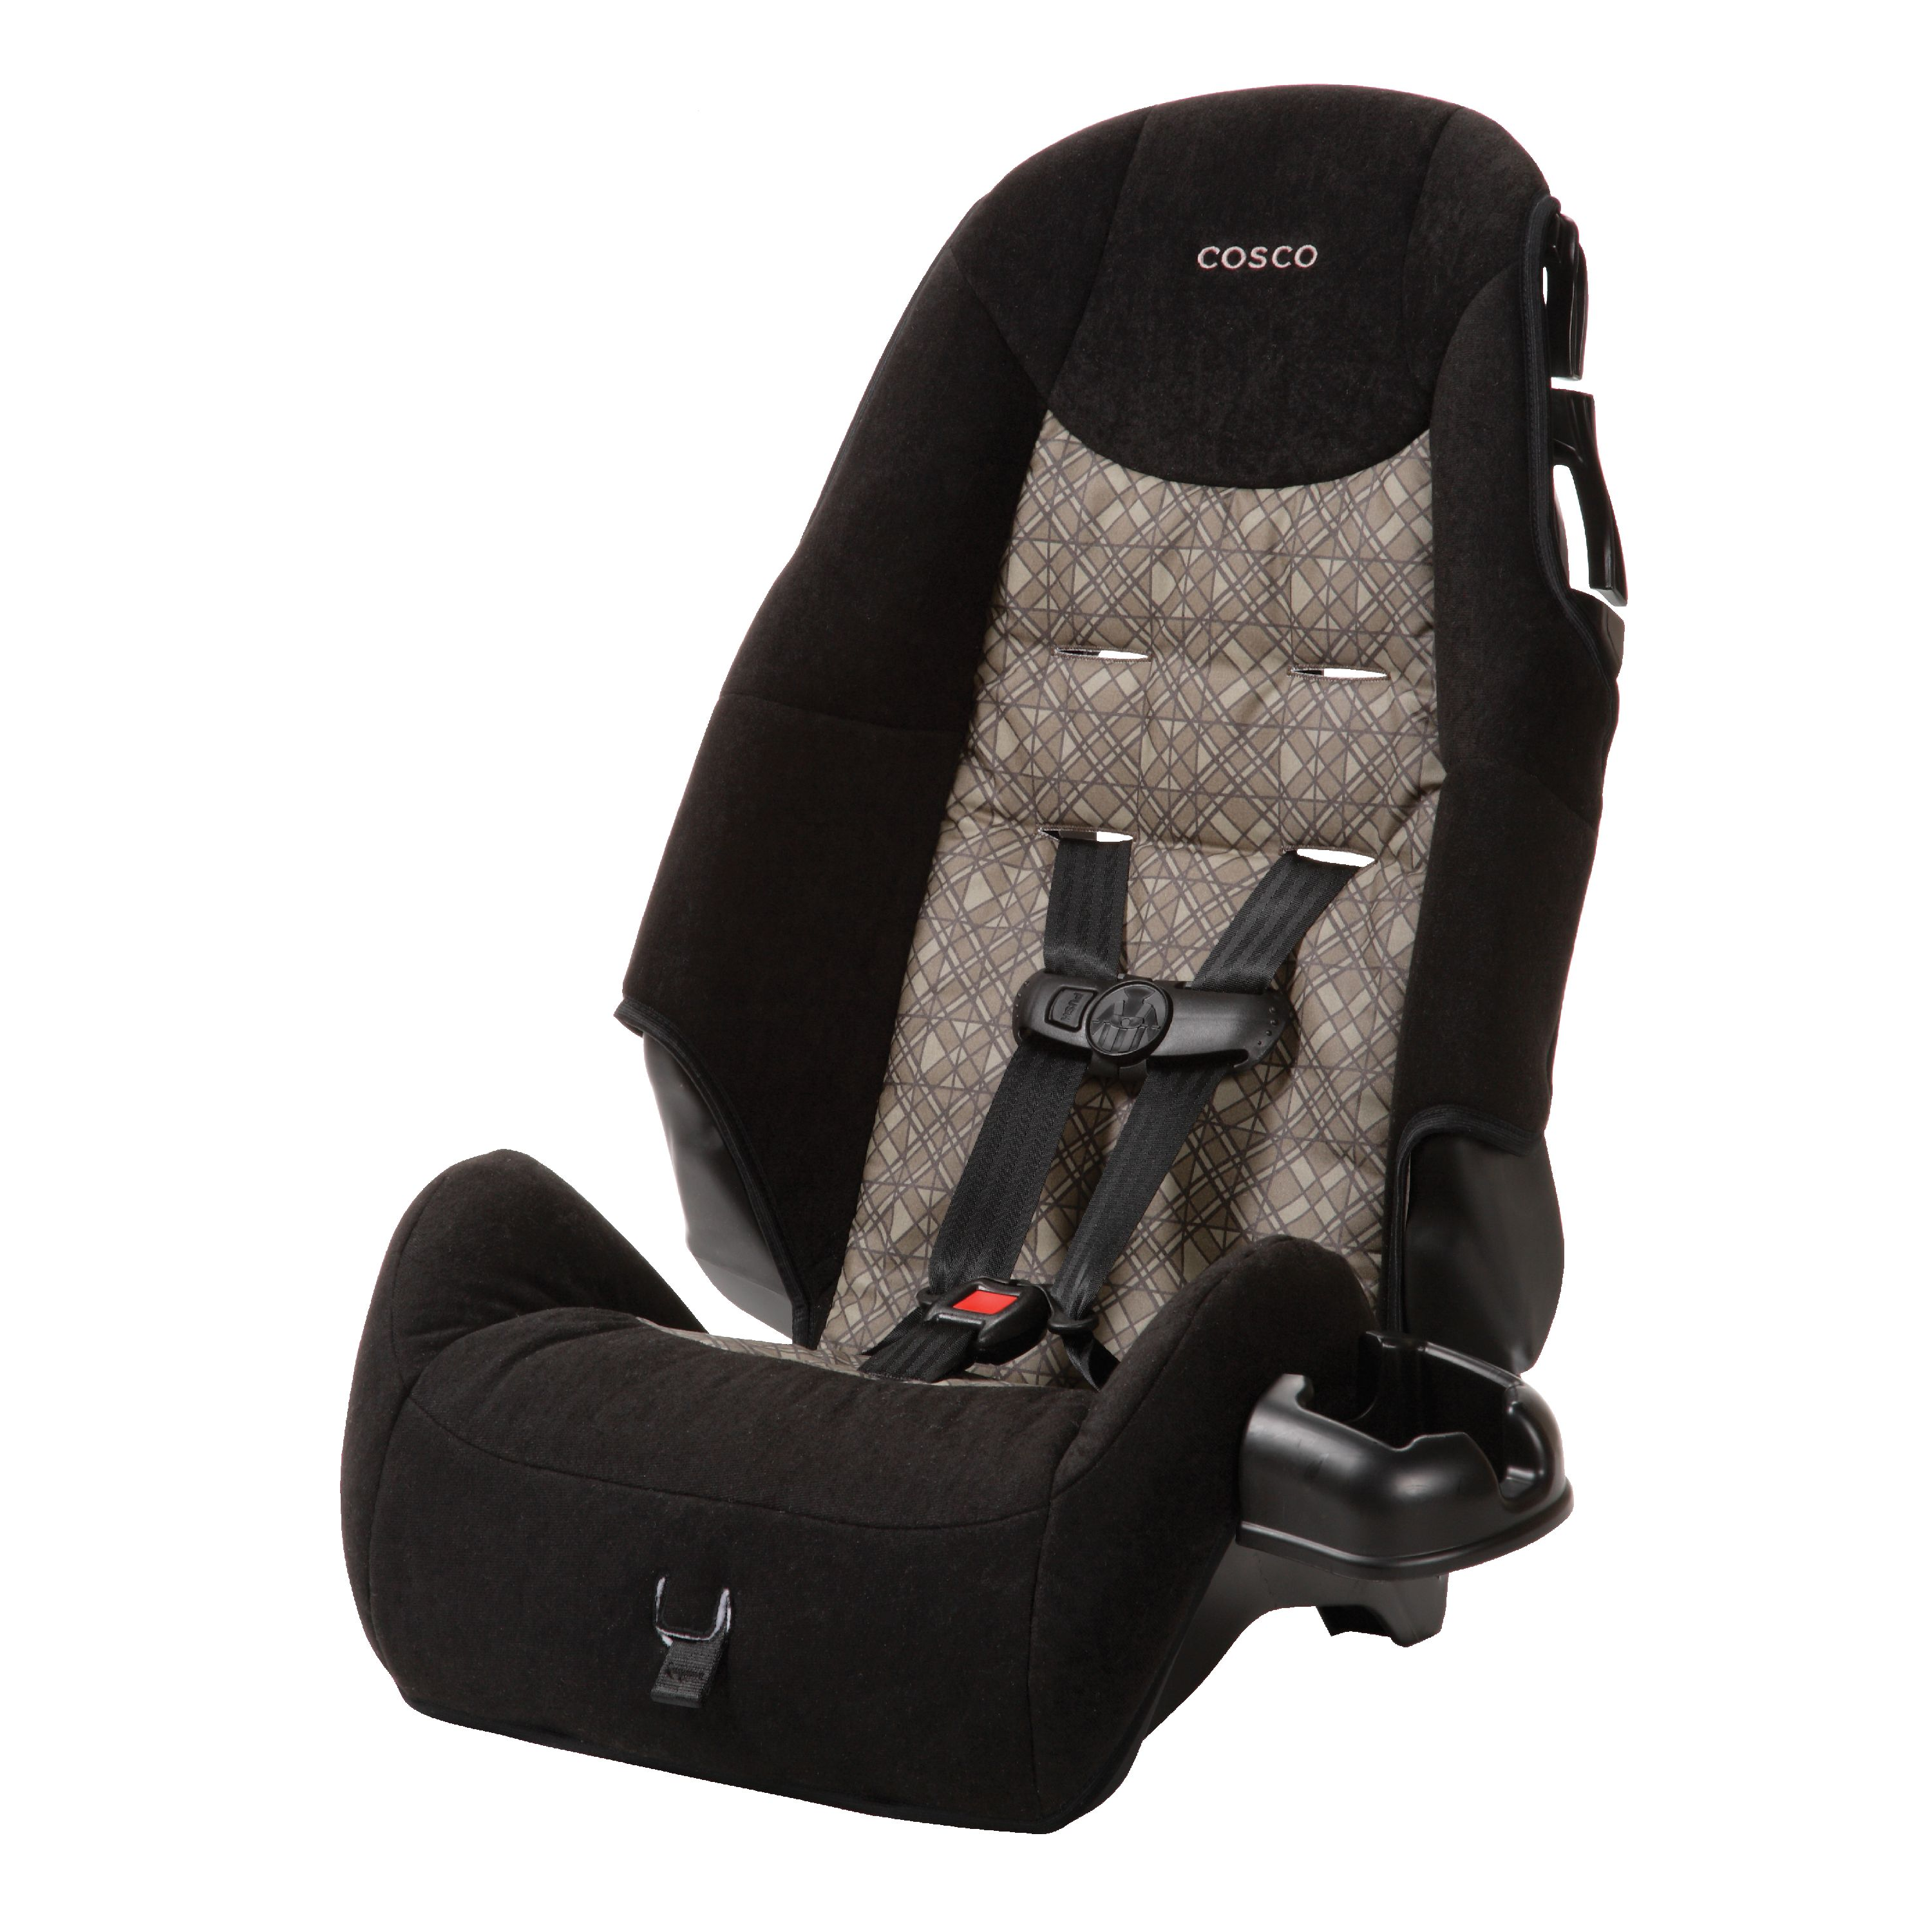 cosco highback booster car seat canteen walmart com rh walmart com Dorel Juvenile Car Seat cosco dorel juvenile car seat instructions